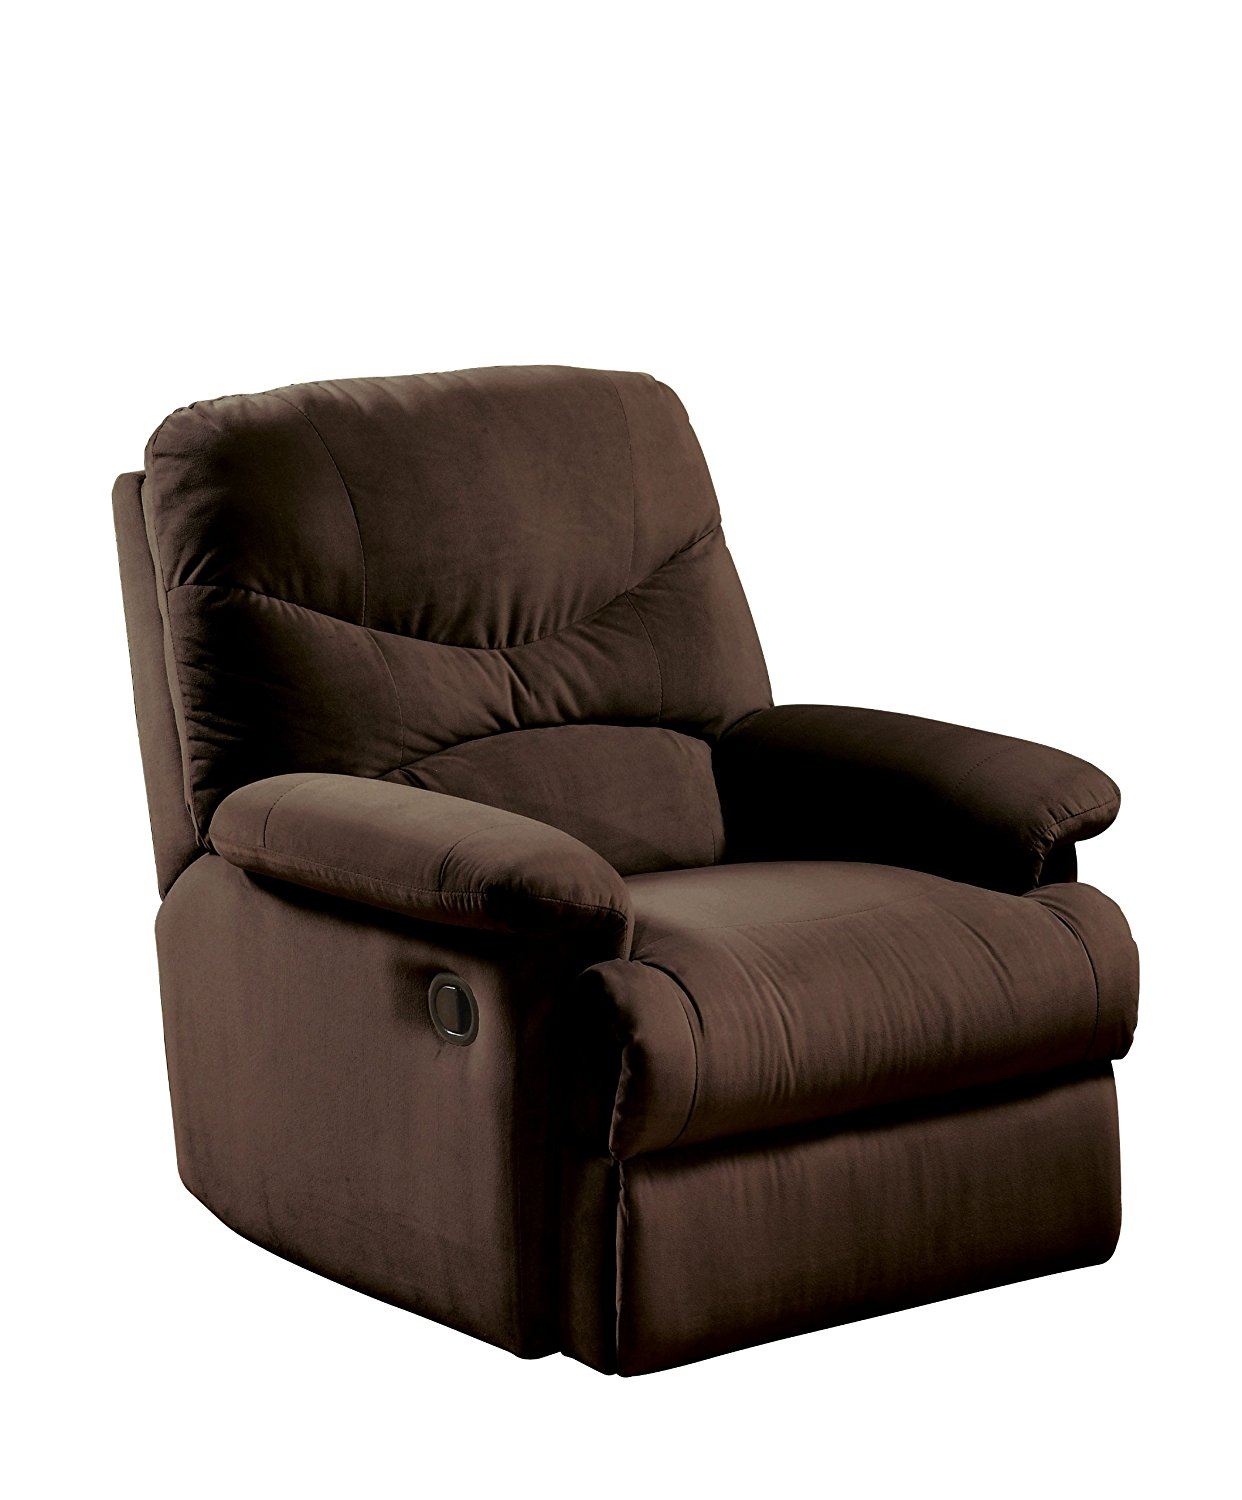 Great Types Of Living Room Chairs 73 On Living Room Sofa Ideas with Types Of Living Room Chairs